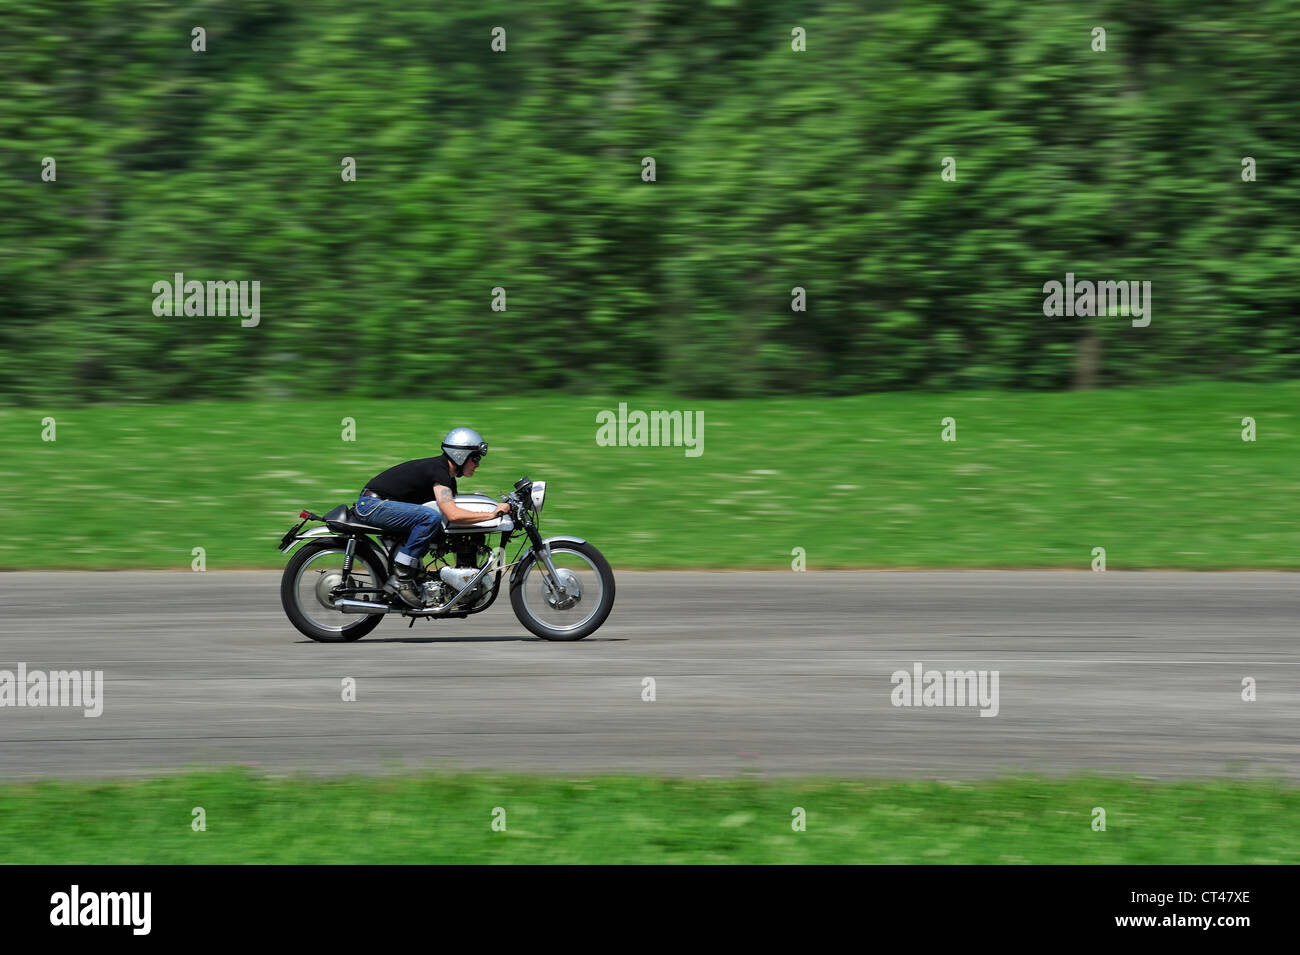 A motorcyclist travelling at high speed. Motion blur on wheels and background - Stock Image